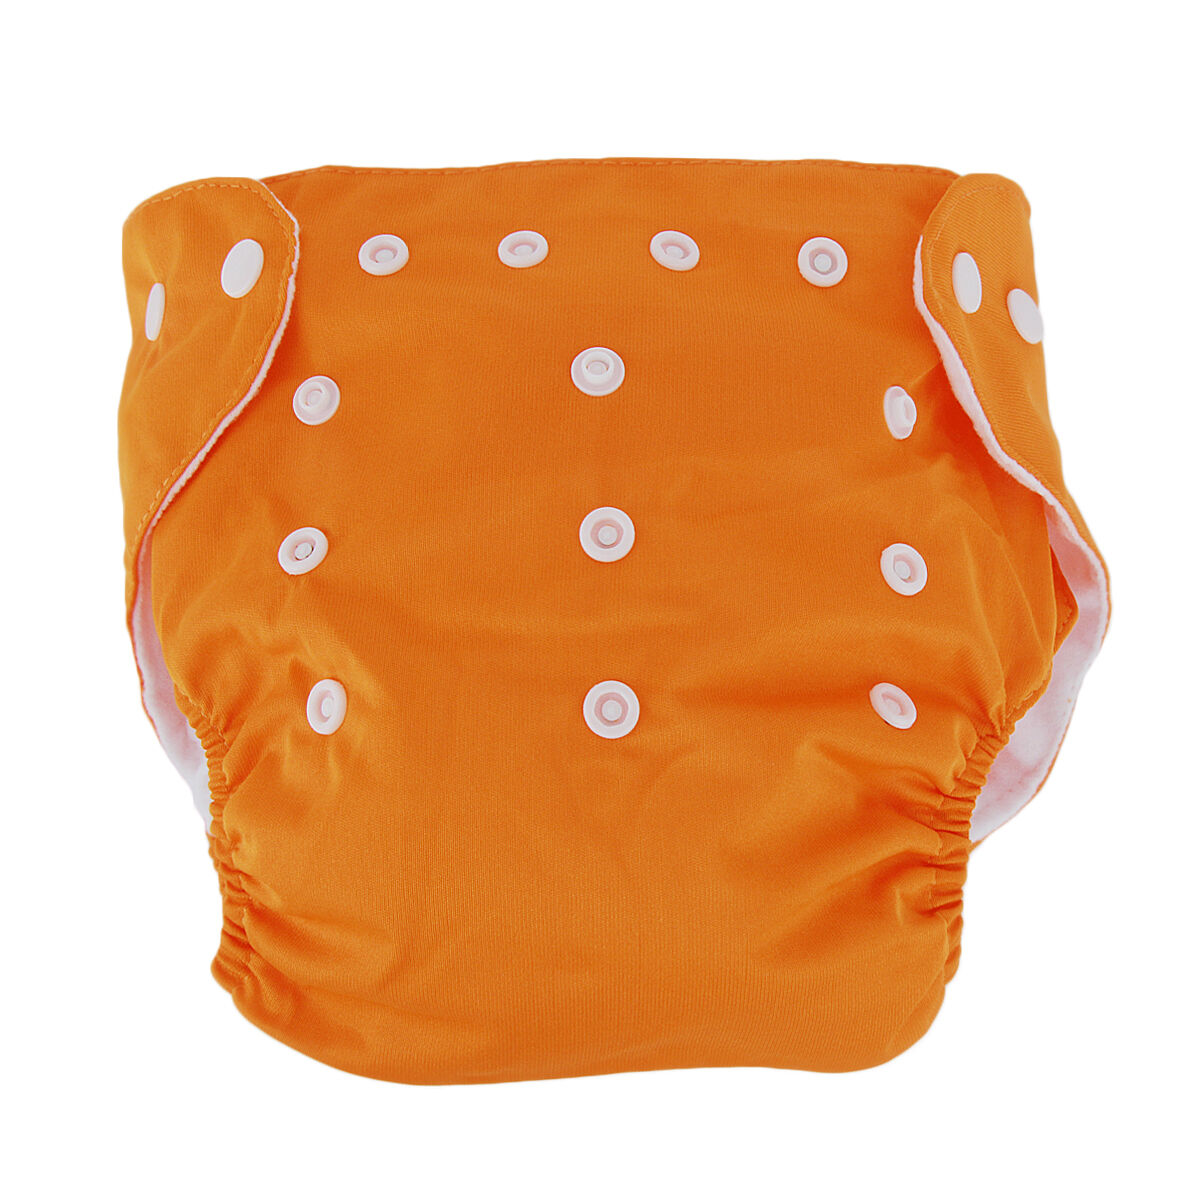 5pcs+ 5Inserts Adjustable Reusable Baby Washable Infant Nappy Soft Cloth Diapers Orange